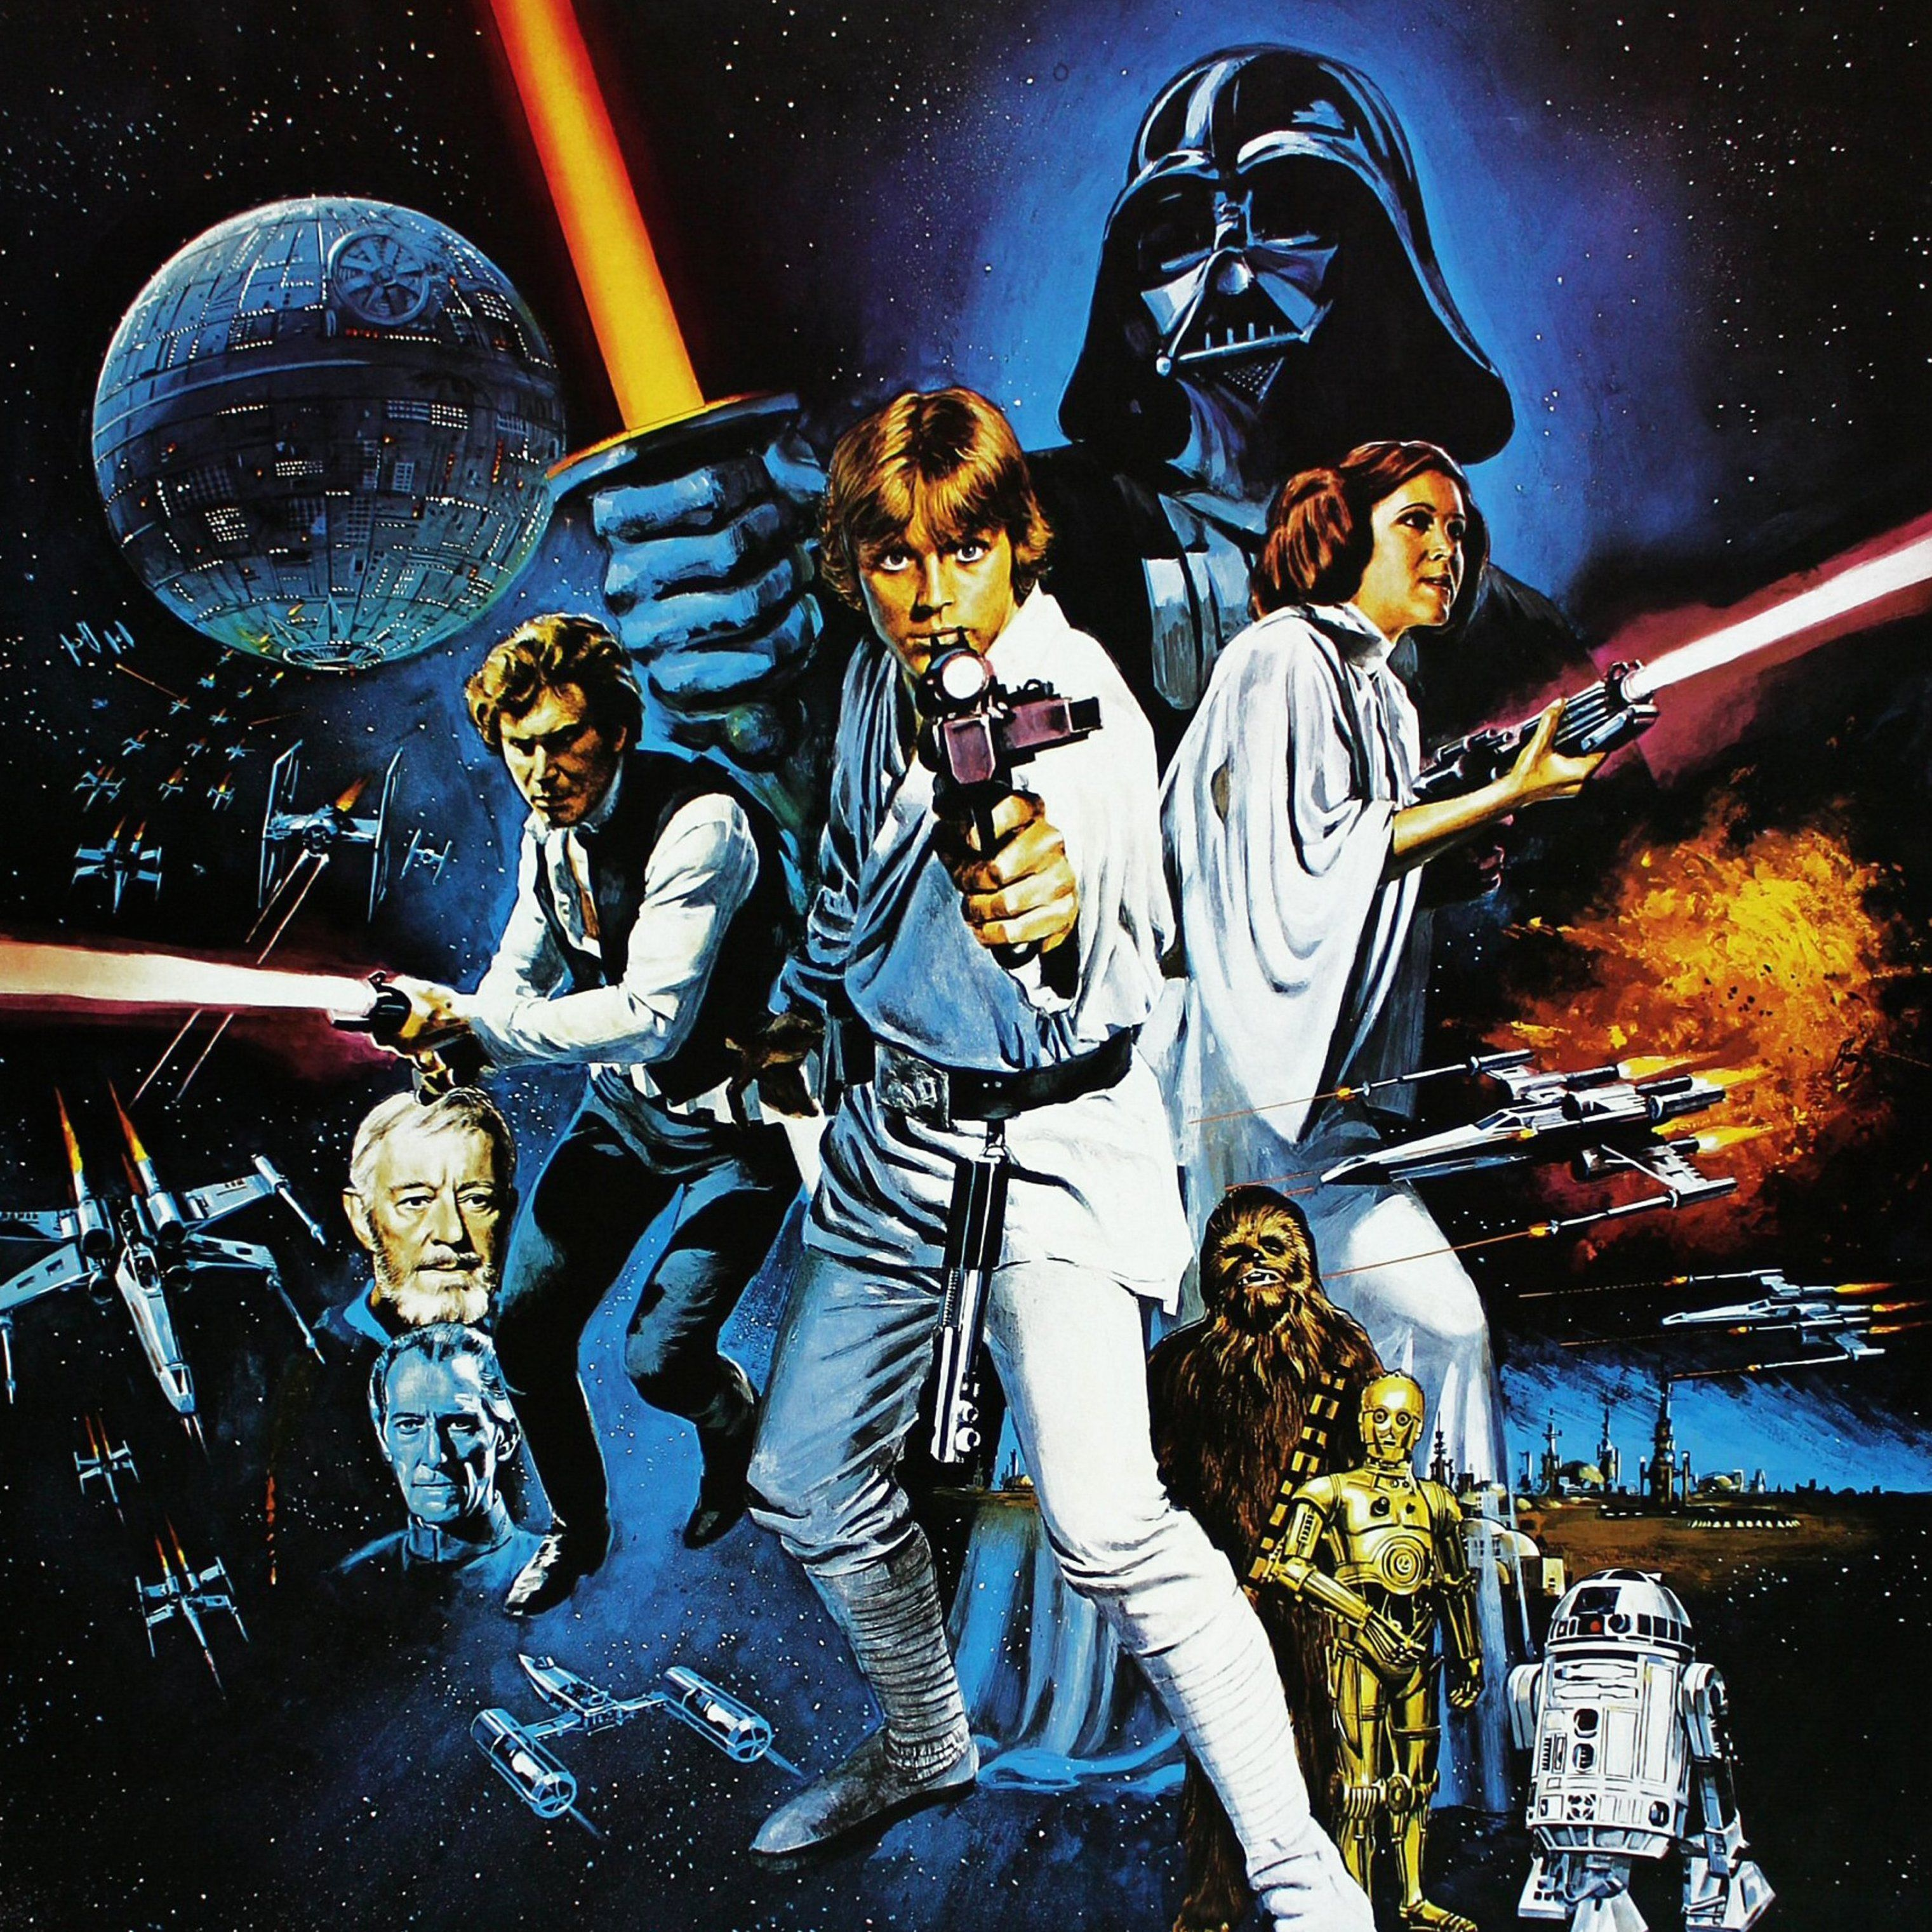 We Watched The Original Star Wars For The First Time And Have A Lot Of Questions Mtv